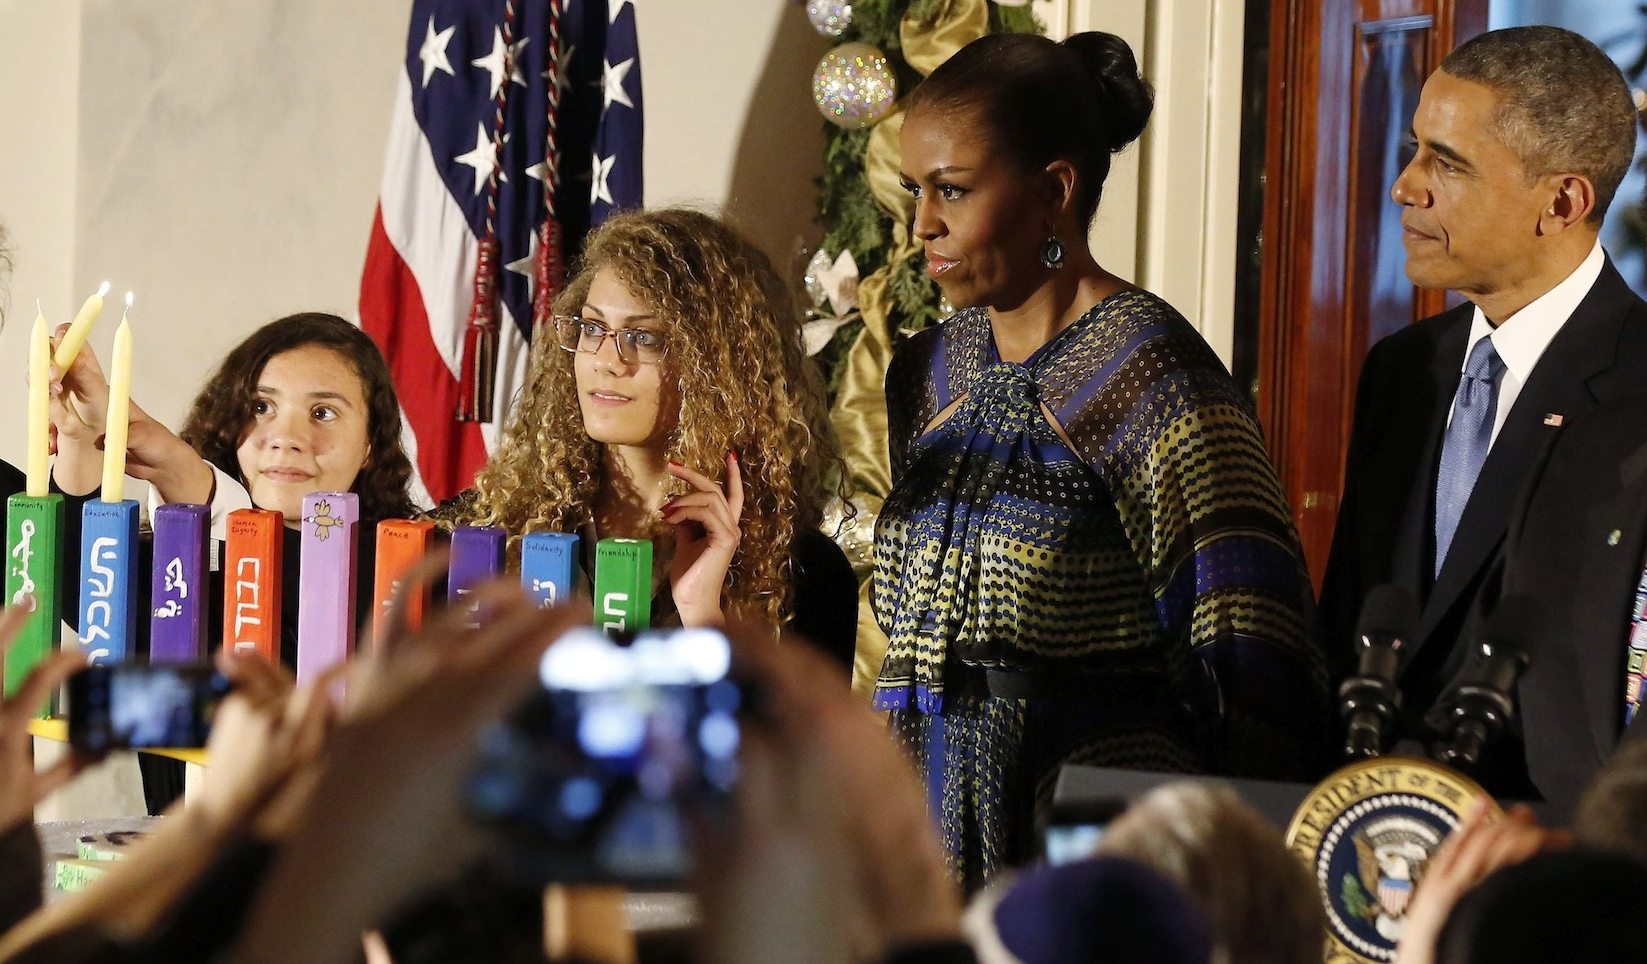 U.S. President Barack Obama is joined by Rebecca Bardach, Inbar Shaked Vardi, Mouran Ibrahim and first lady Michelle Obama as they attend a Hanukkah reception in the Grand Foyer of the White House in Washington